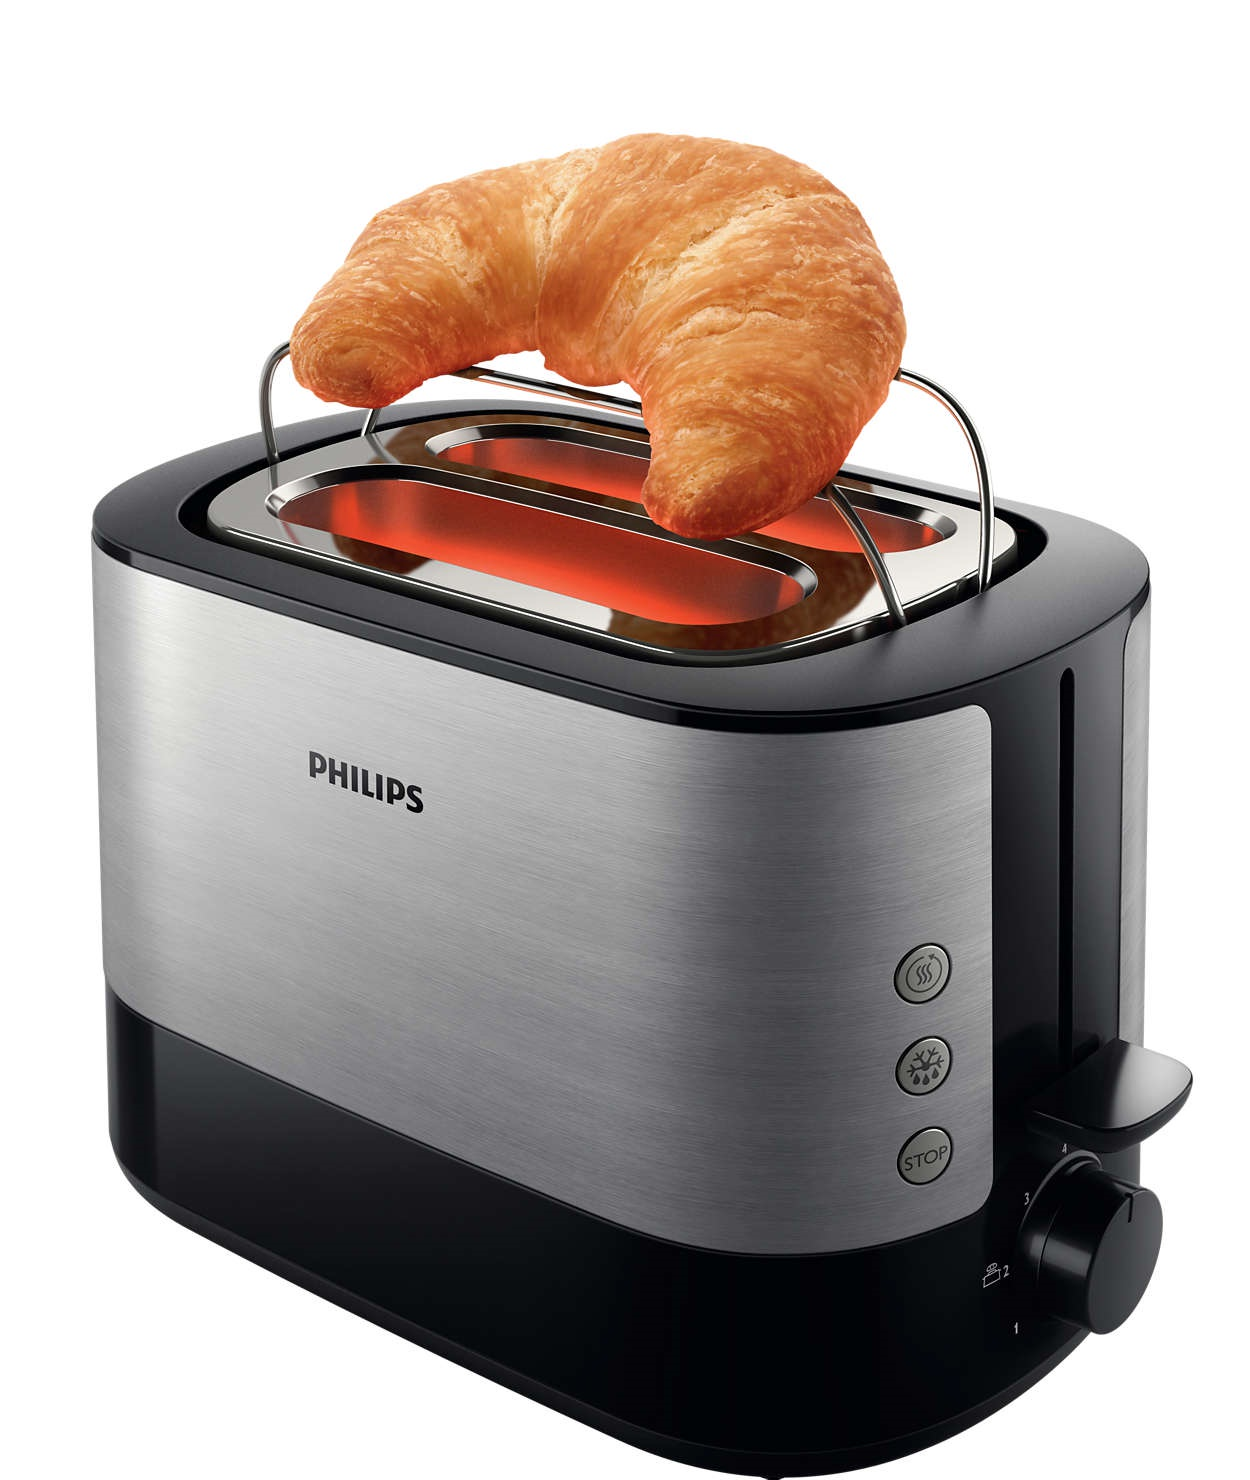 2-Philips HD2637-90 toaster